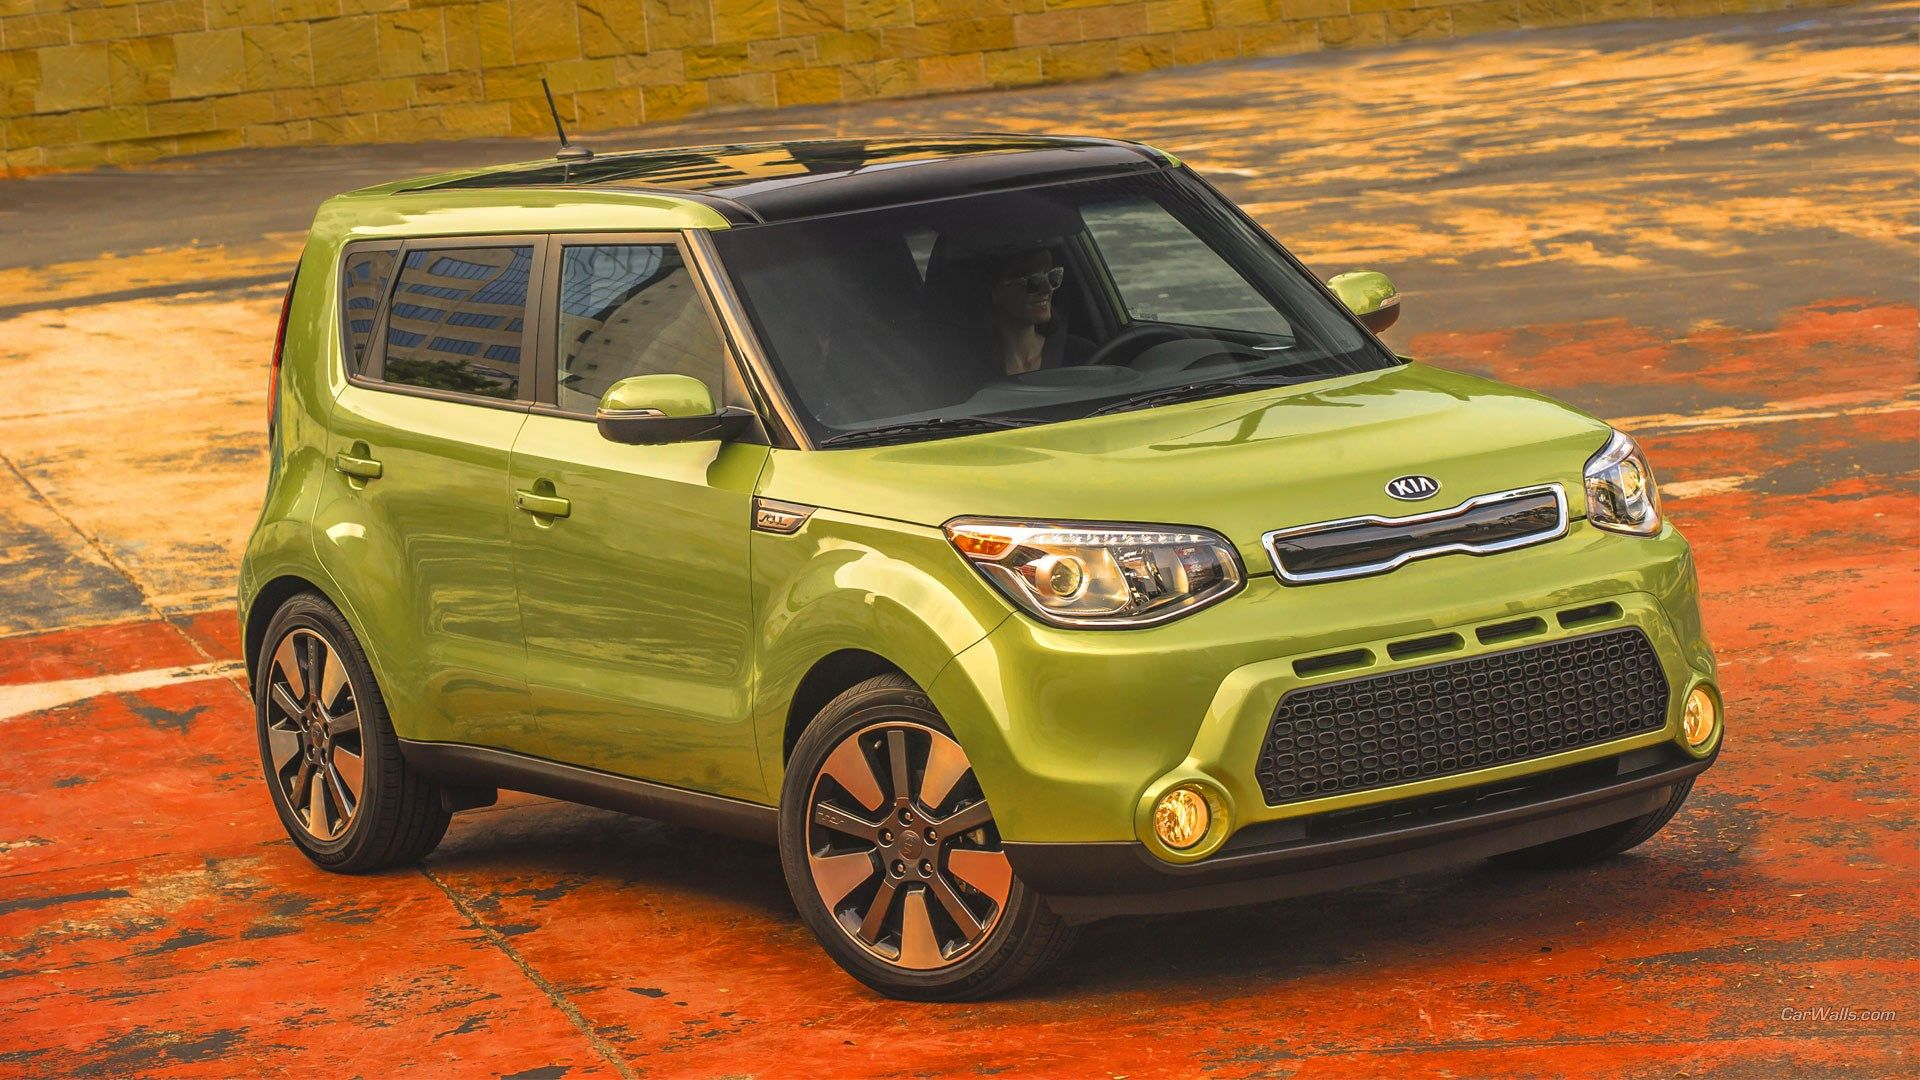 of north interior oh cc kia olmsted for the sale price soul halleen in